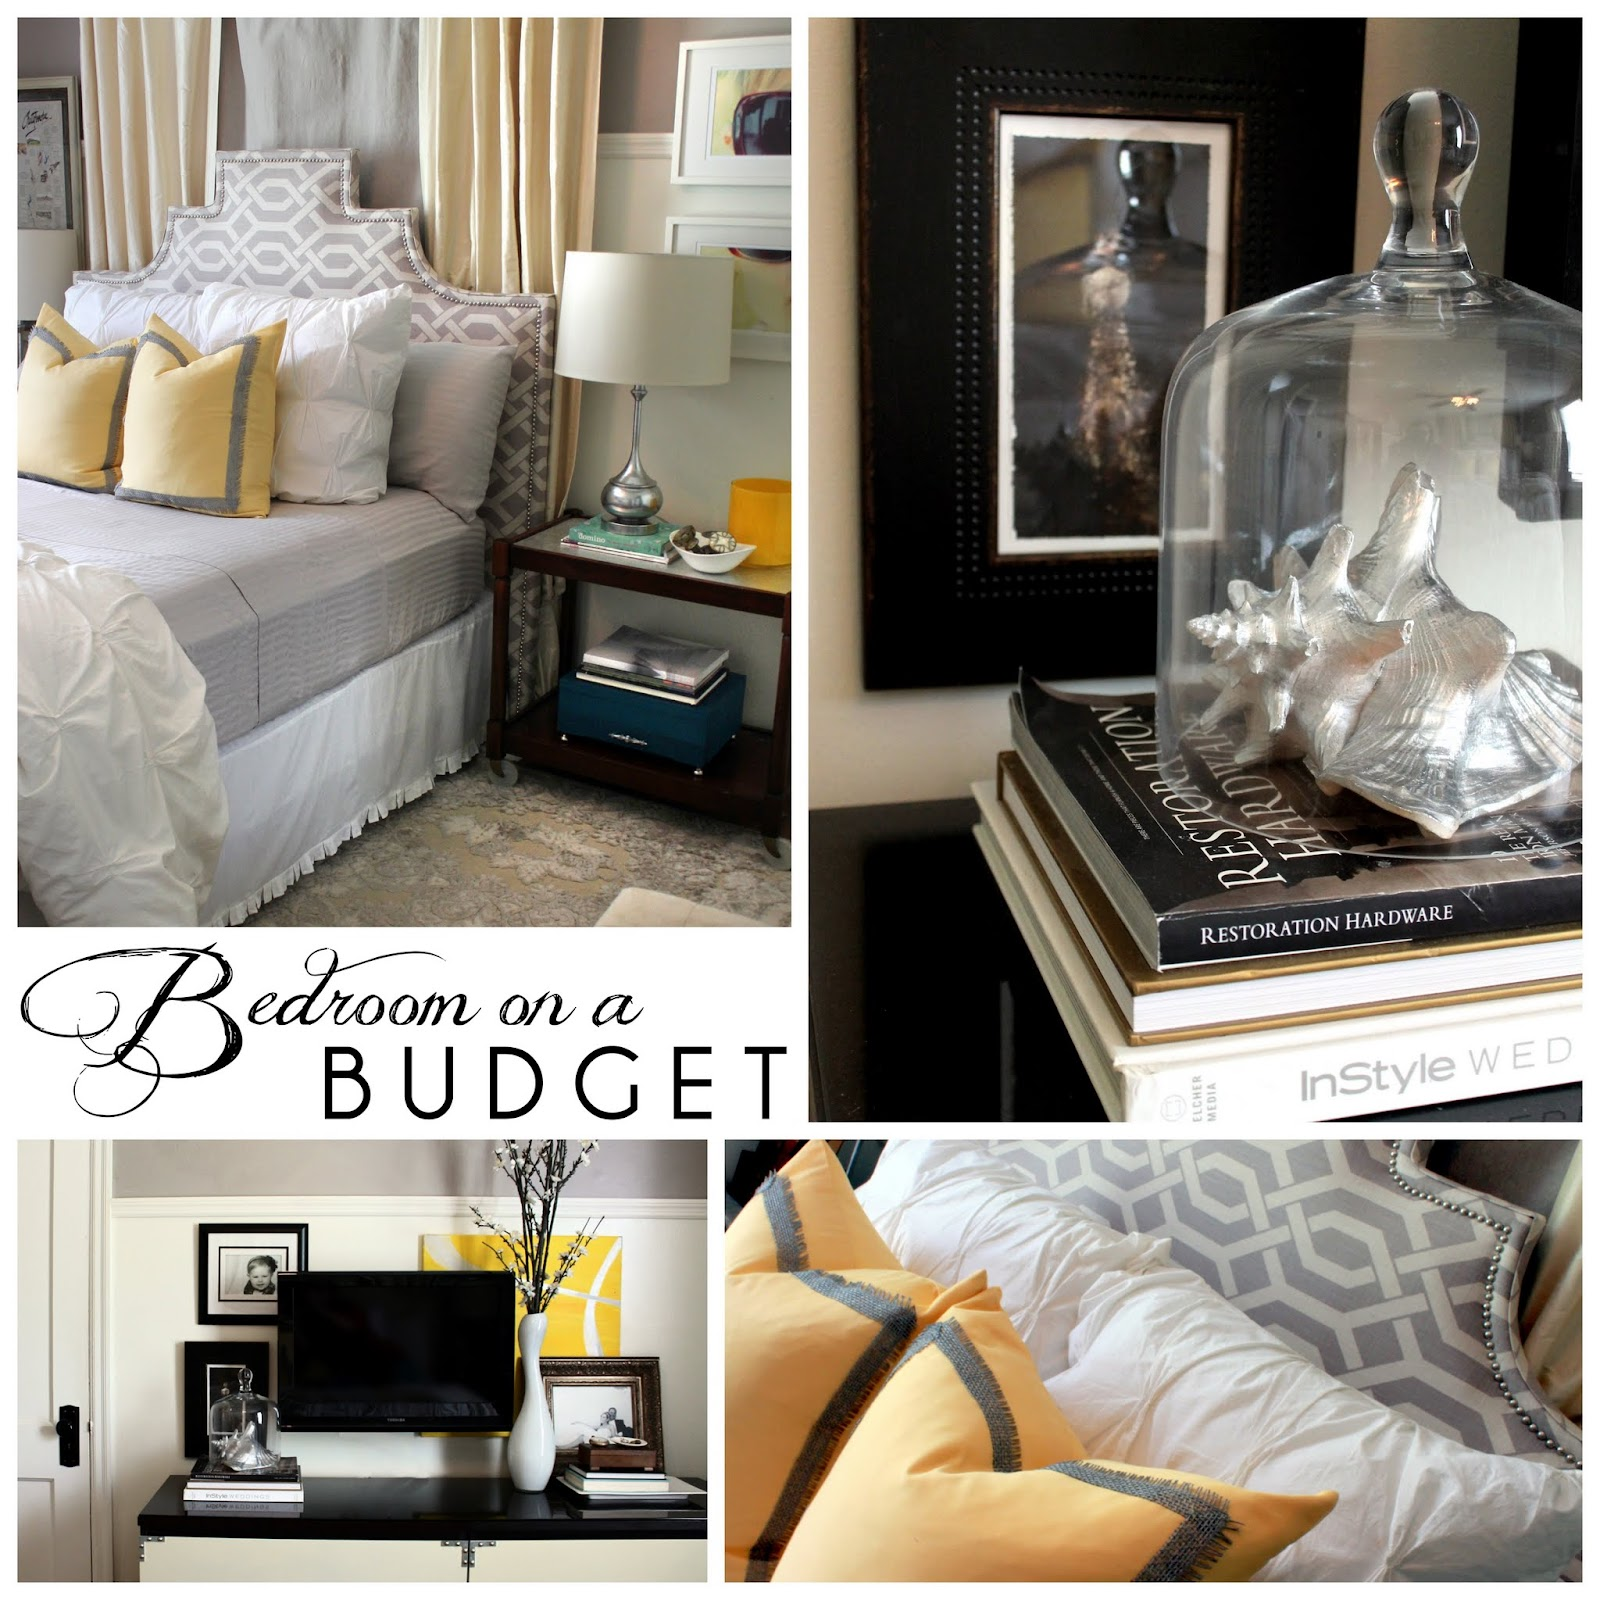 hunted interior bedroom on a budget